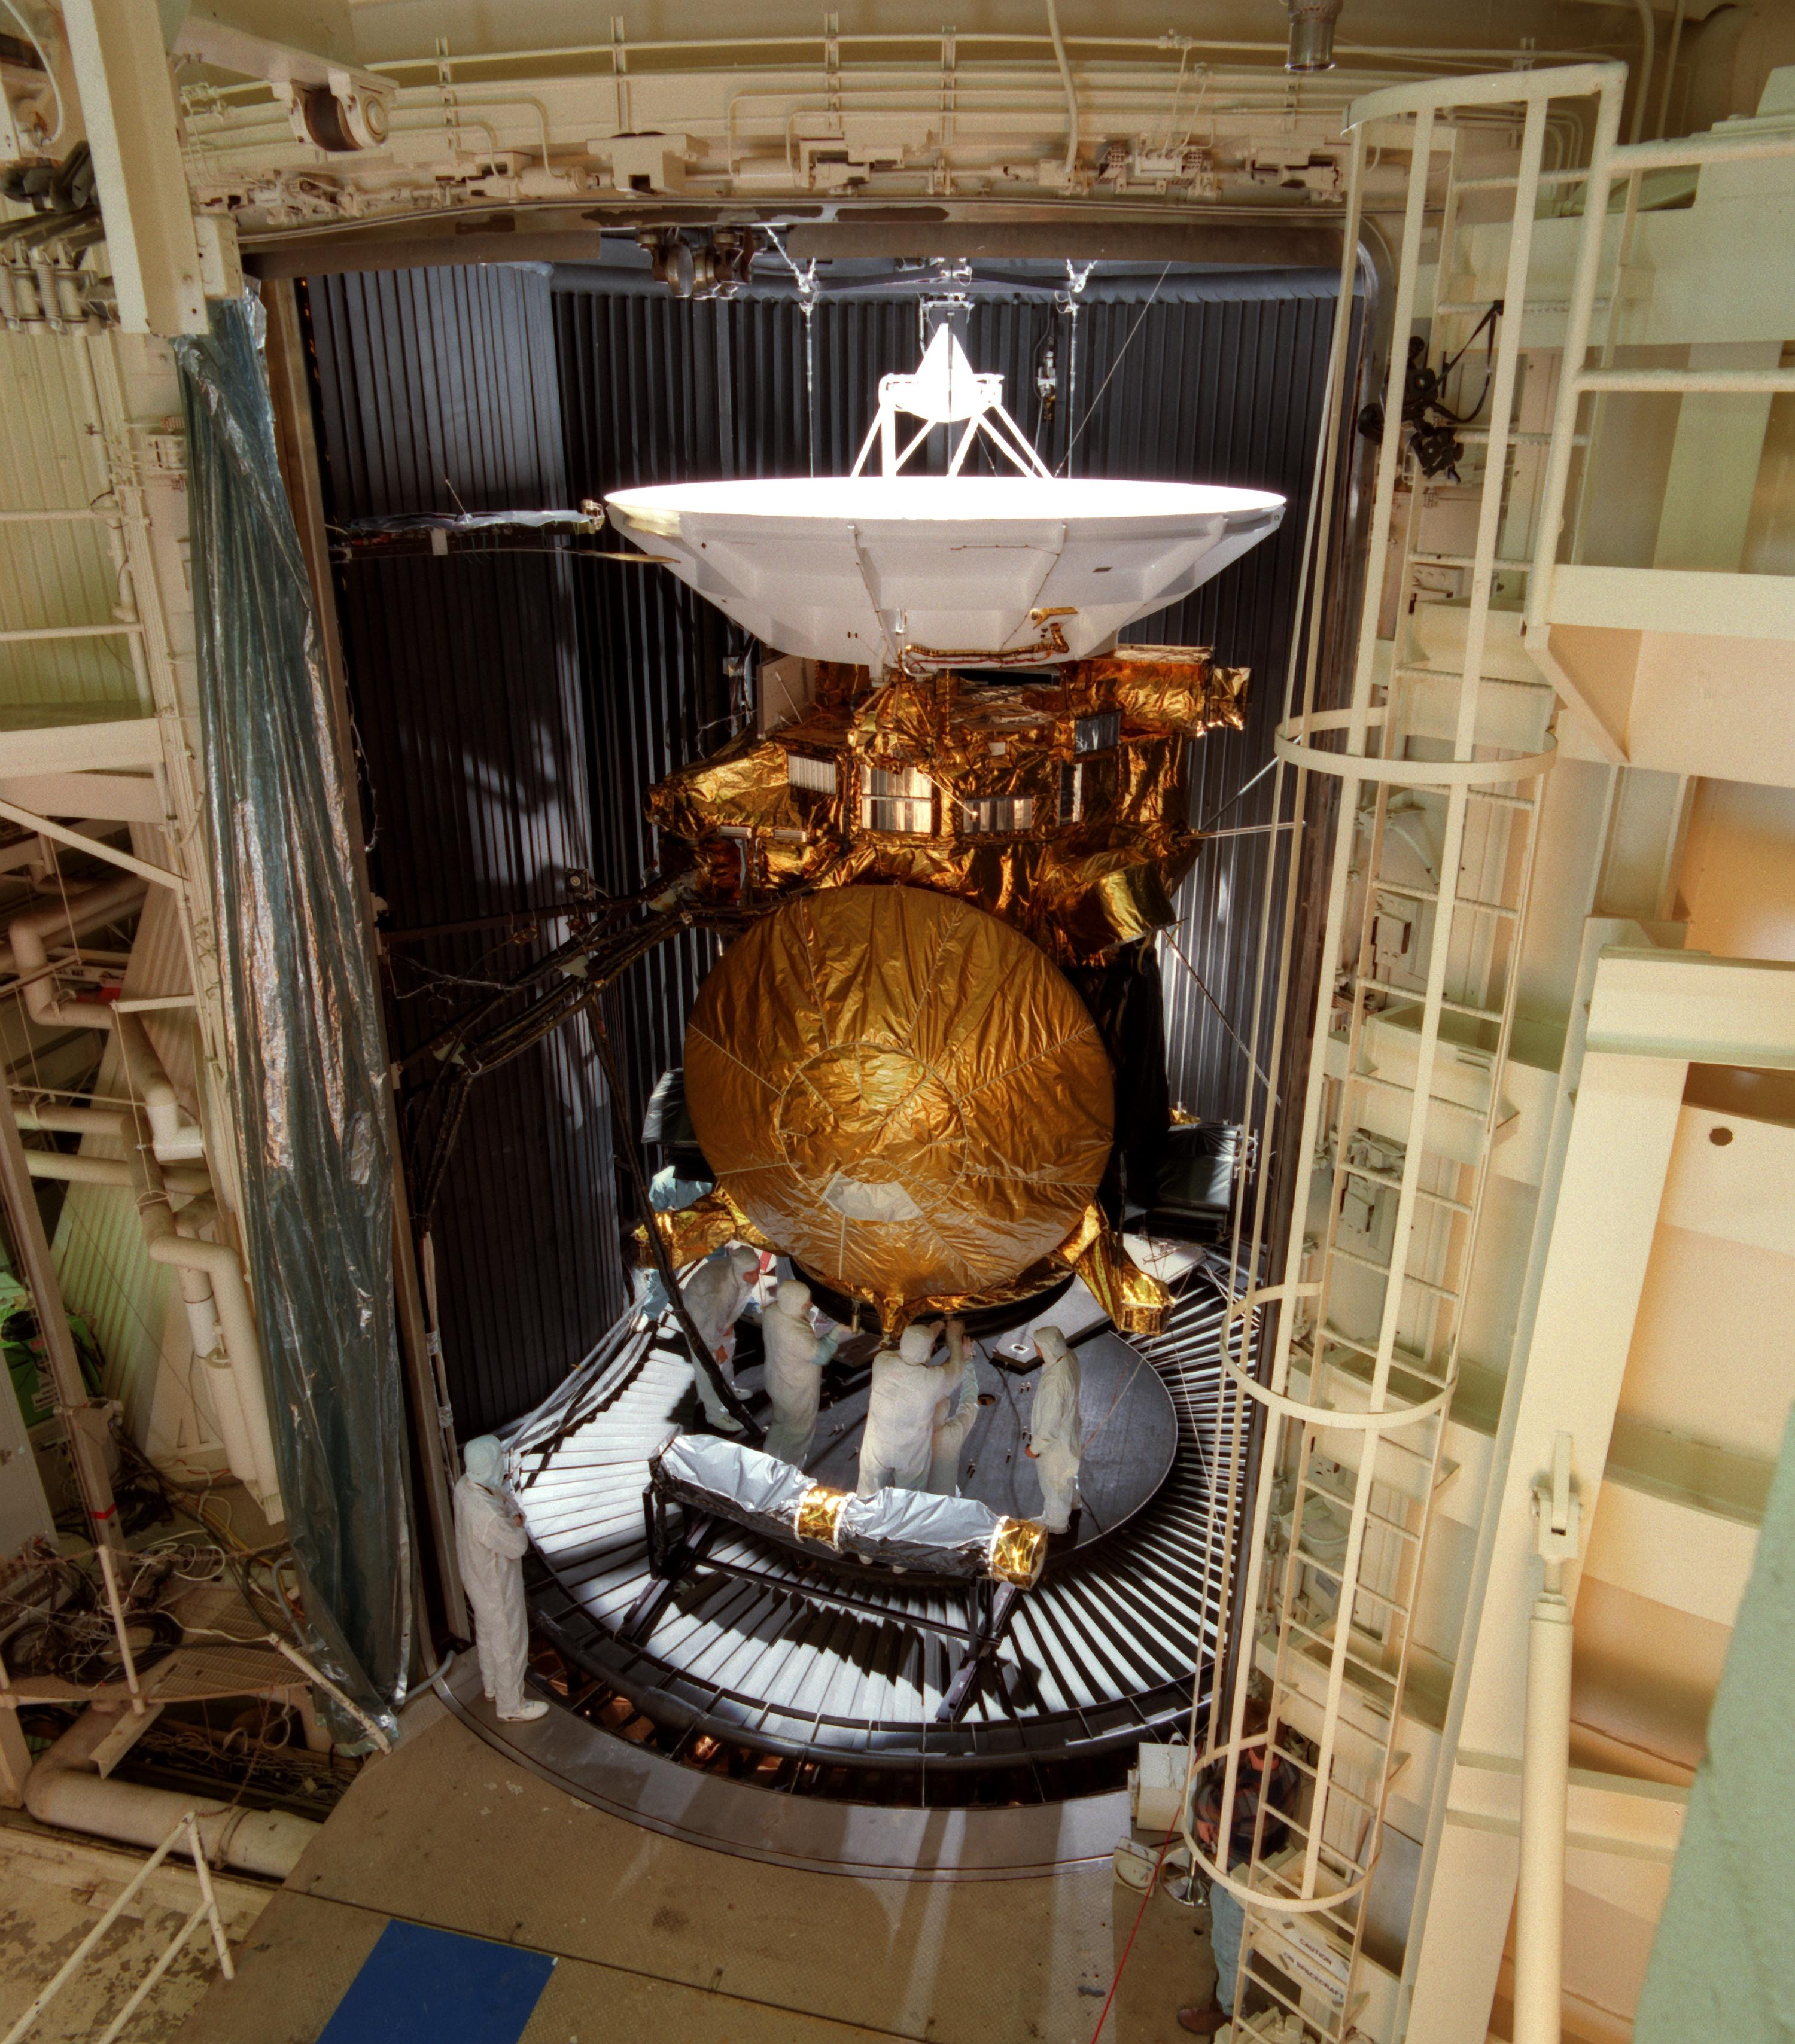 Cassini in the testing chamber